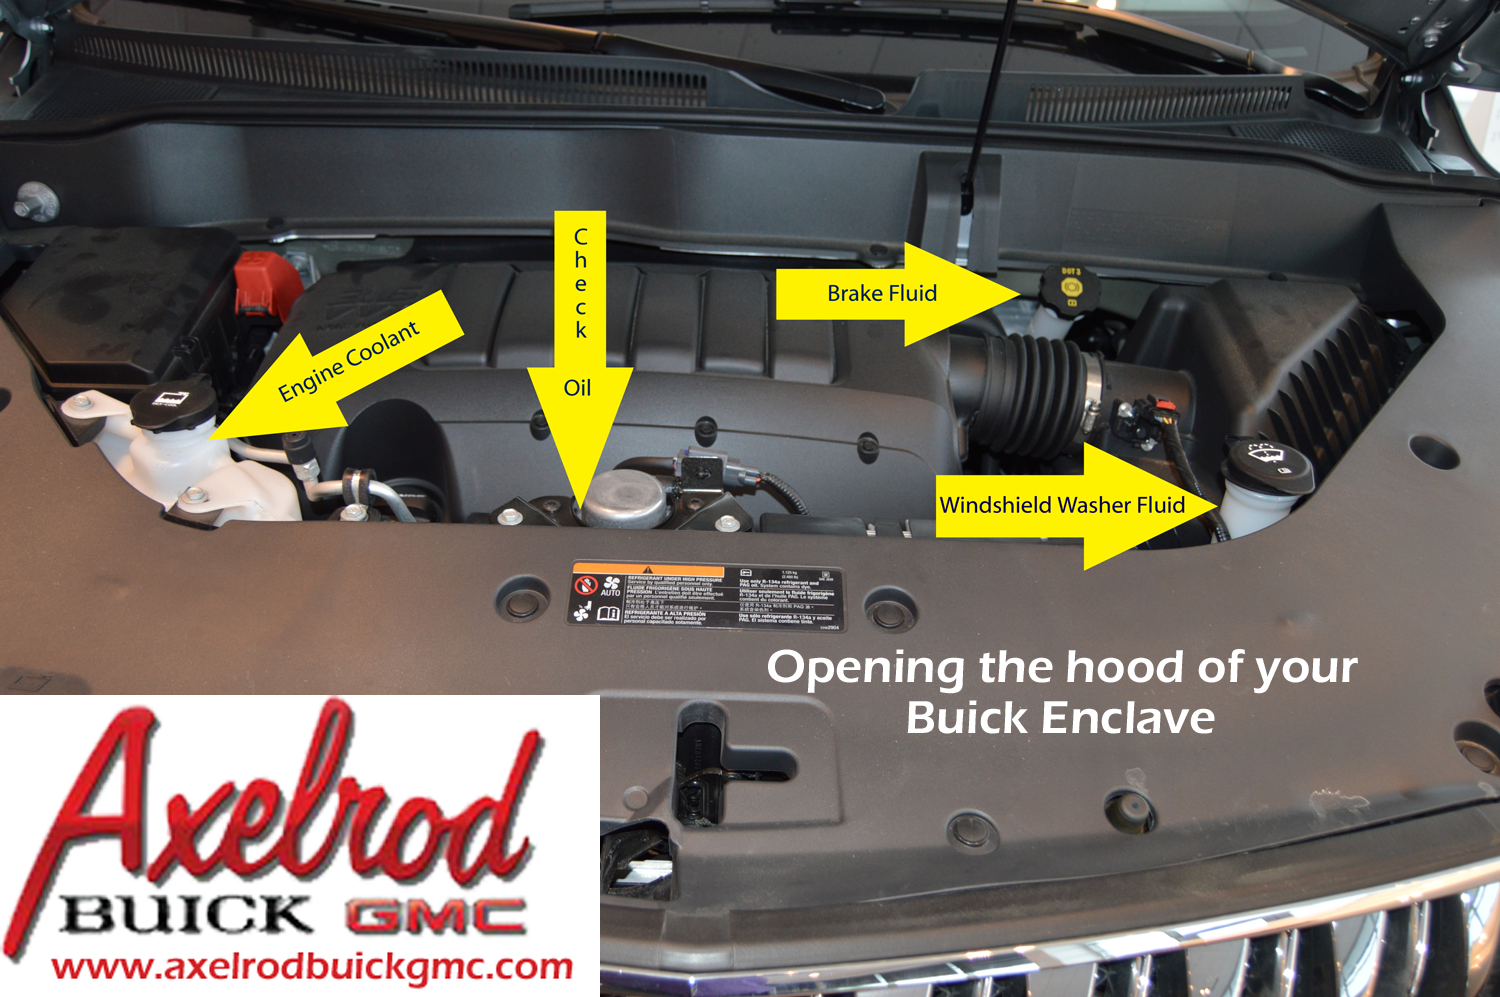 hood on the axelrod battery cleveland gmc your in finding buick underhoodthumbnail ask latch enclave